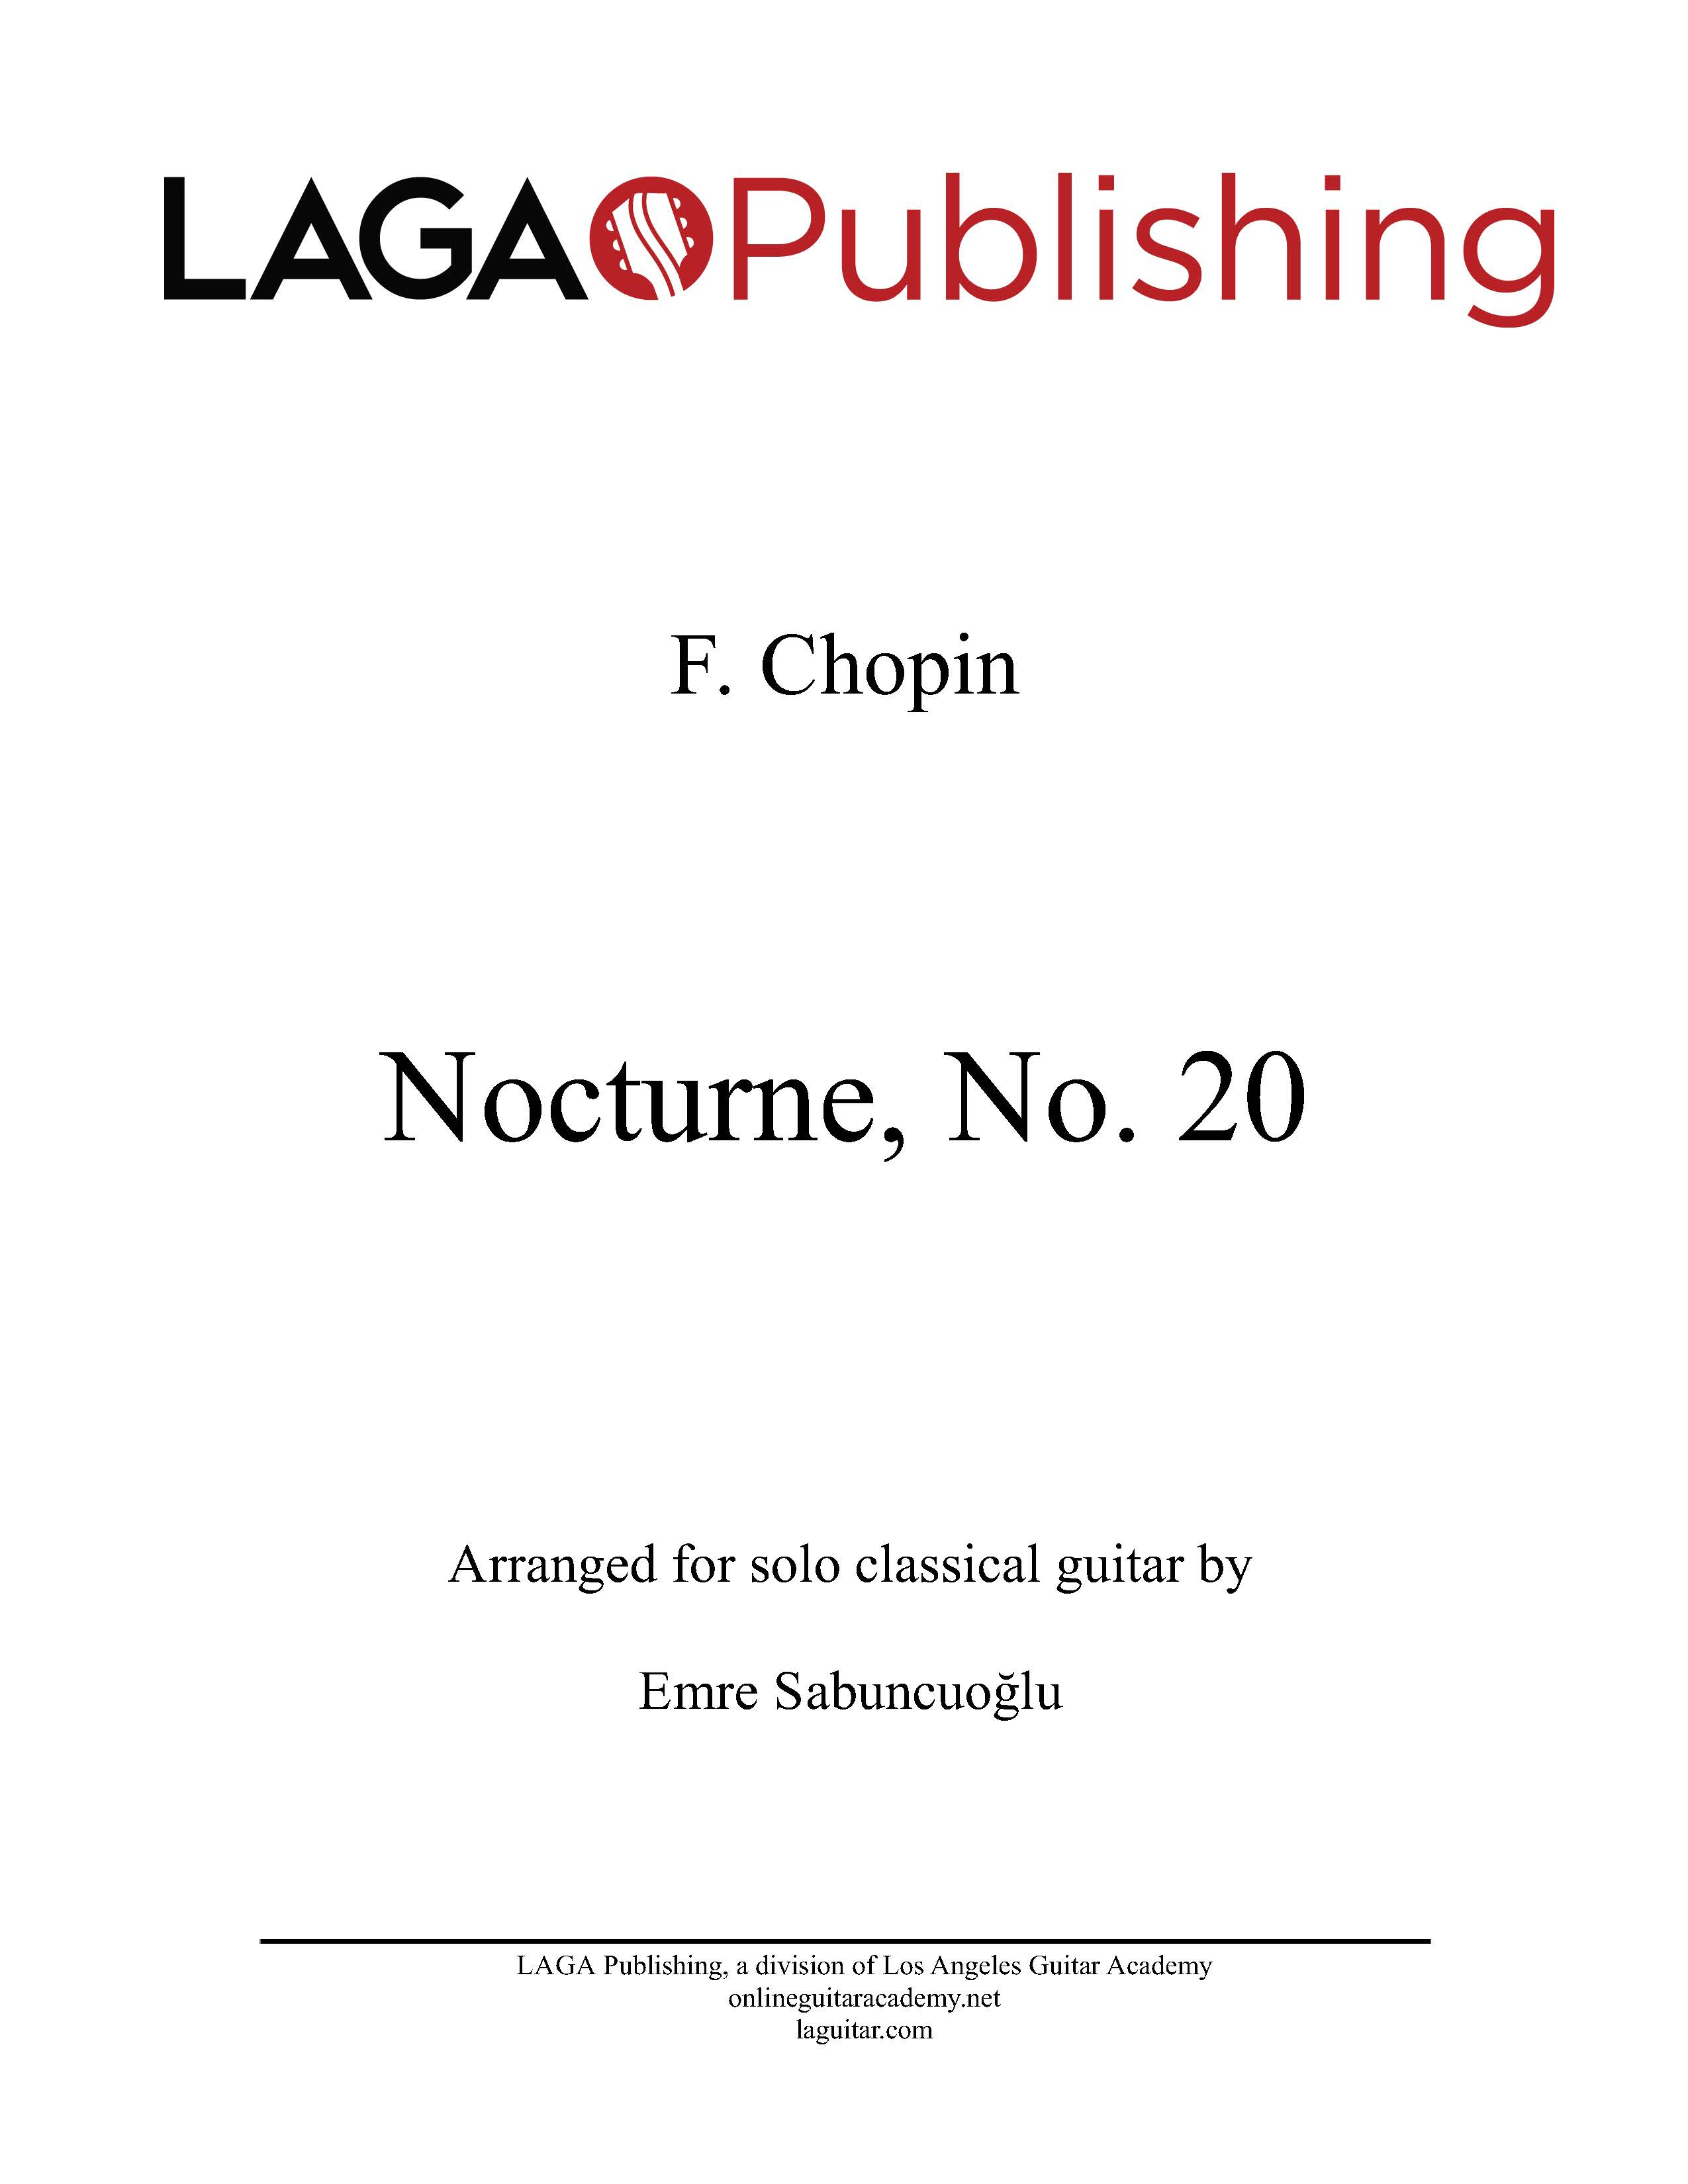 Nocturne No. 20, by F. Chopin for classical guitar